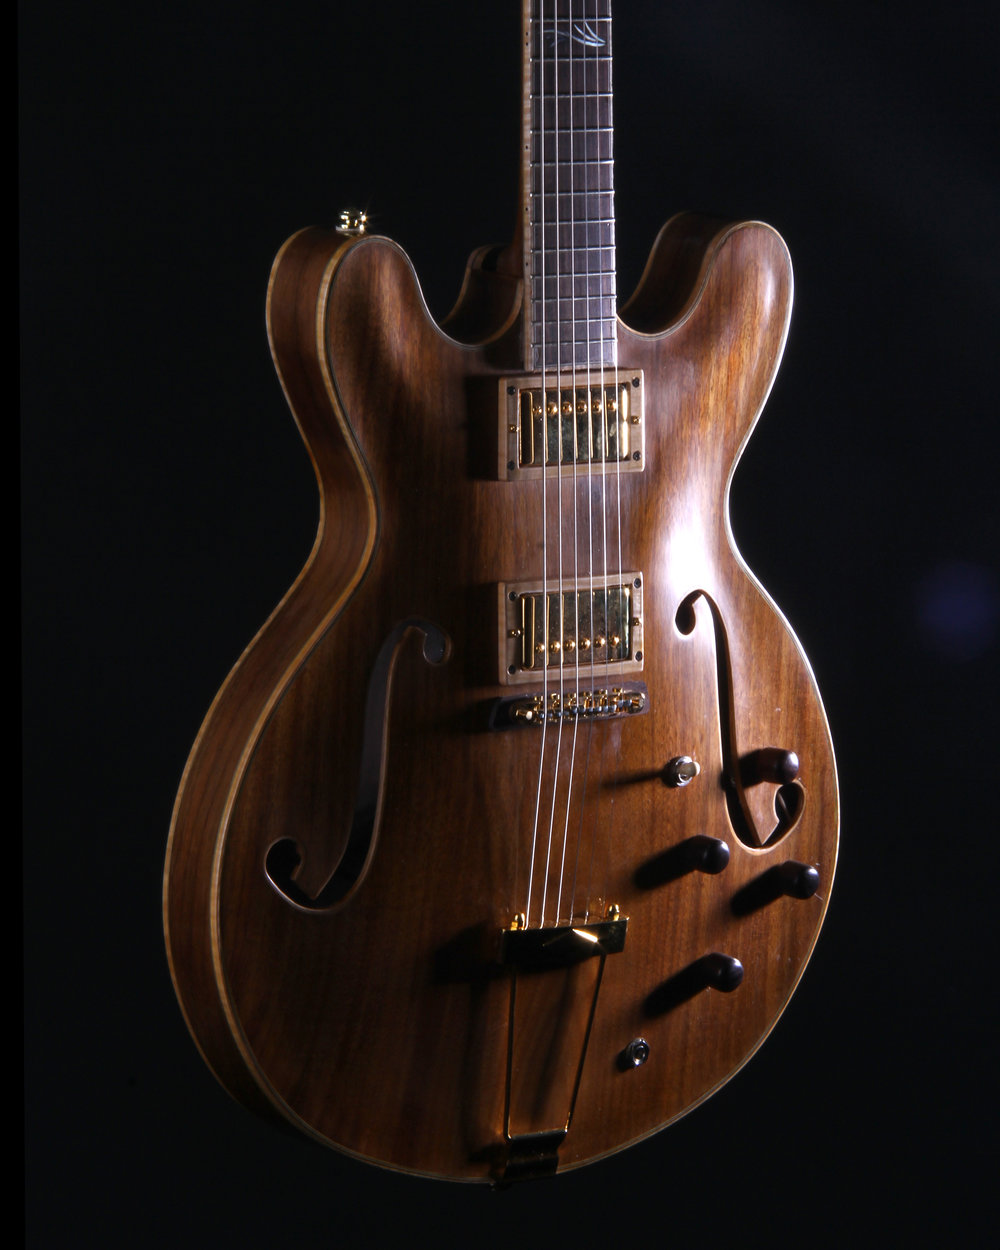 Walnut carved back/top thin line hollow body. One piece back and top. Fralin Pure PAF pickups, Gotoh Delta tuners. Maple bound f-holes and pickup rings.